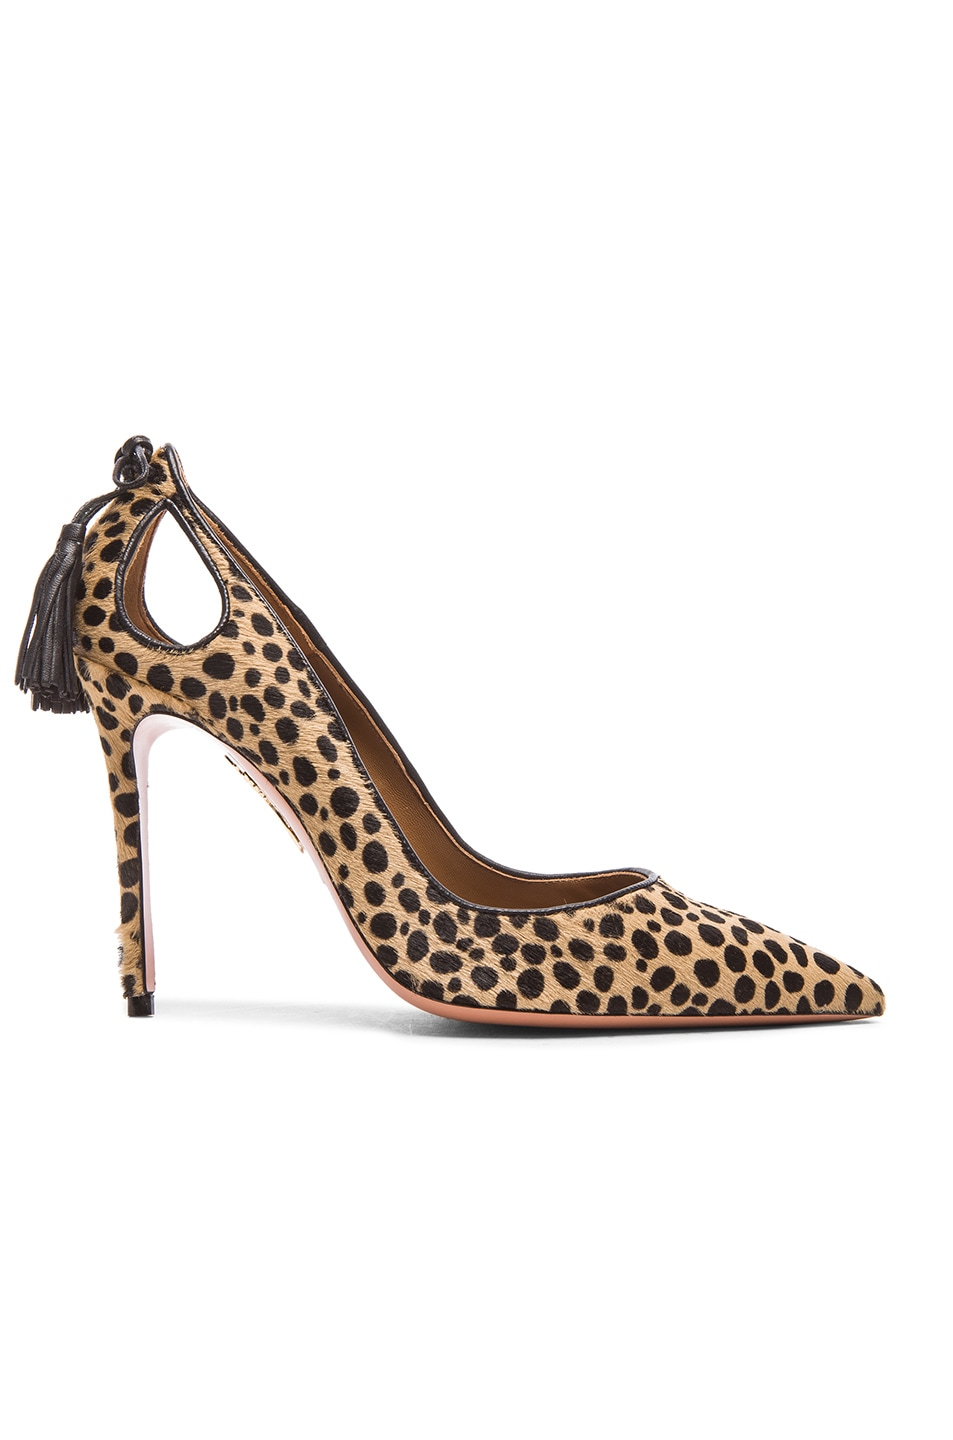 Image 1 of Aquazzura Forever Marilyn Calf Hair Heels in Cheetah